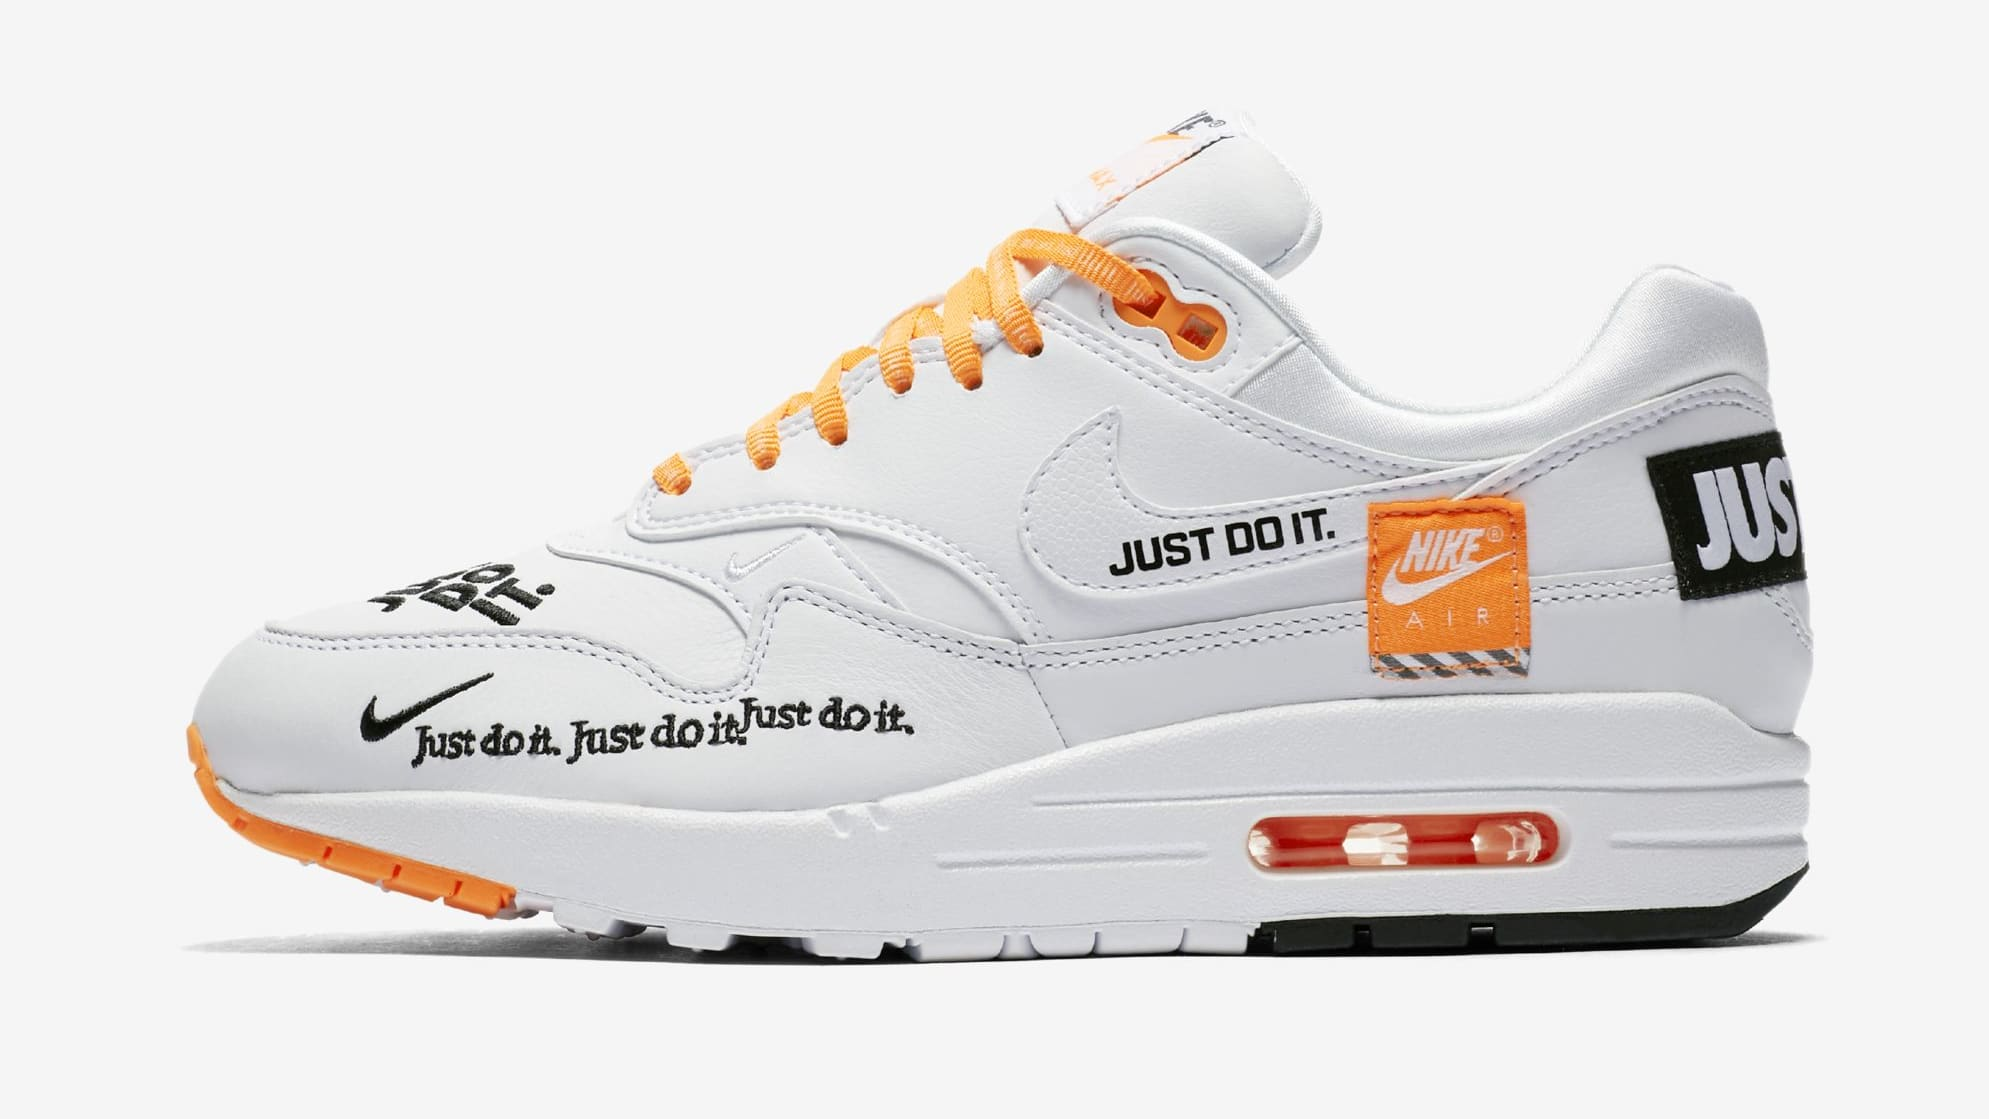 nike-air-max-1-white-just-do-it-release-date